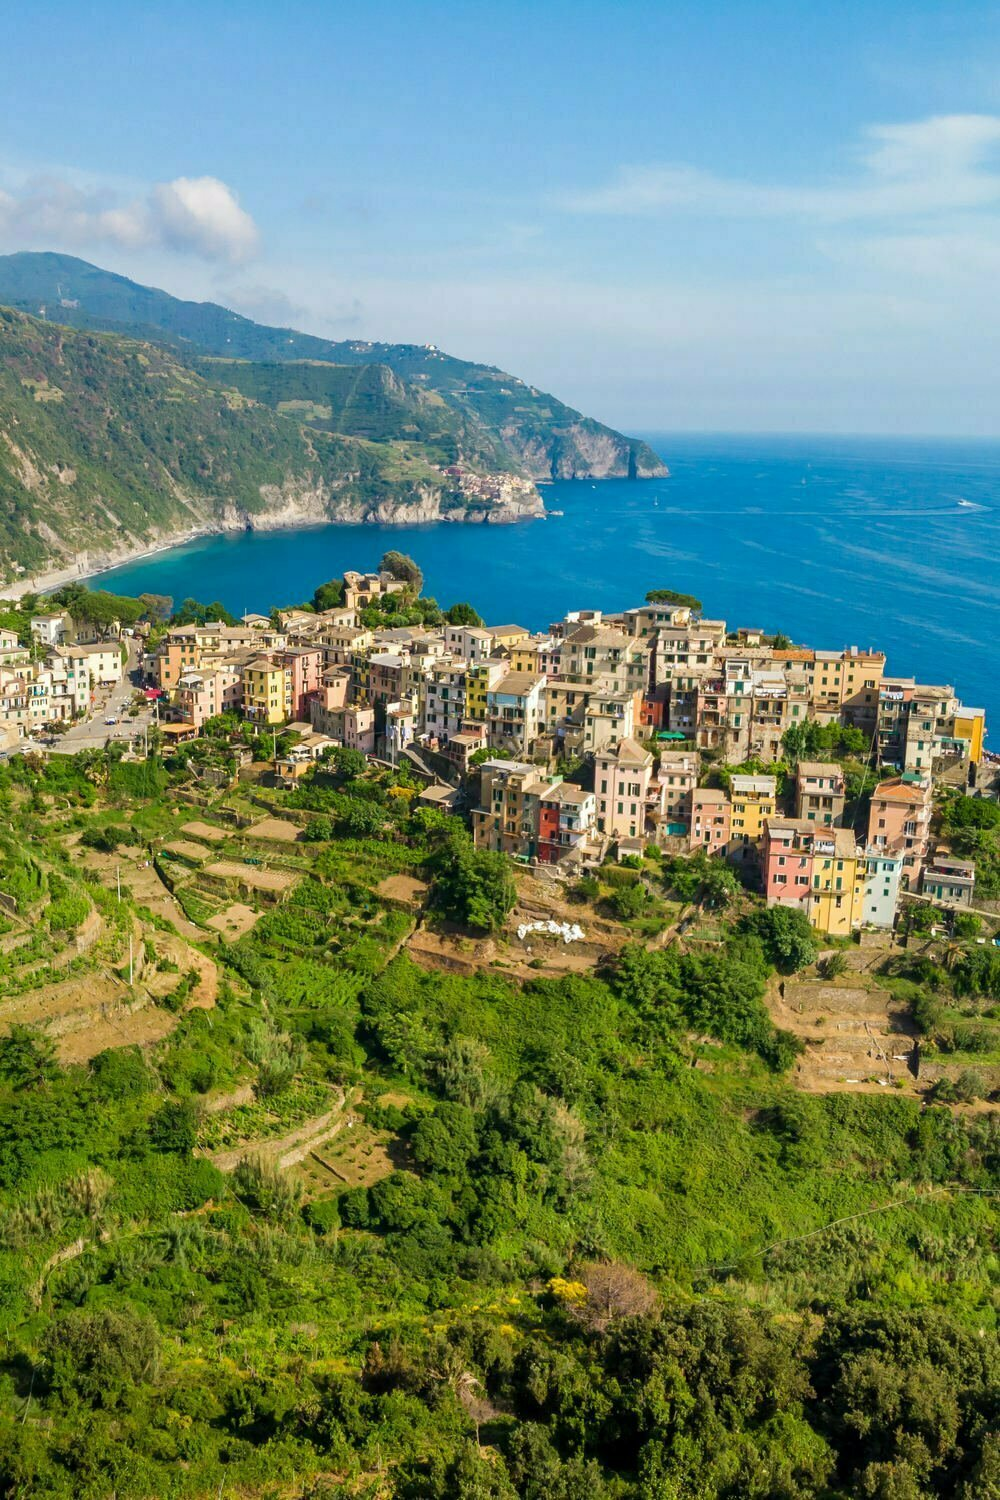 Best Hikes in Cinque Terre - The High Path Trail No 1 Aerial View of Corniglia